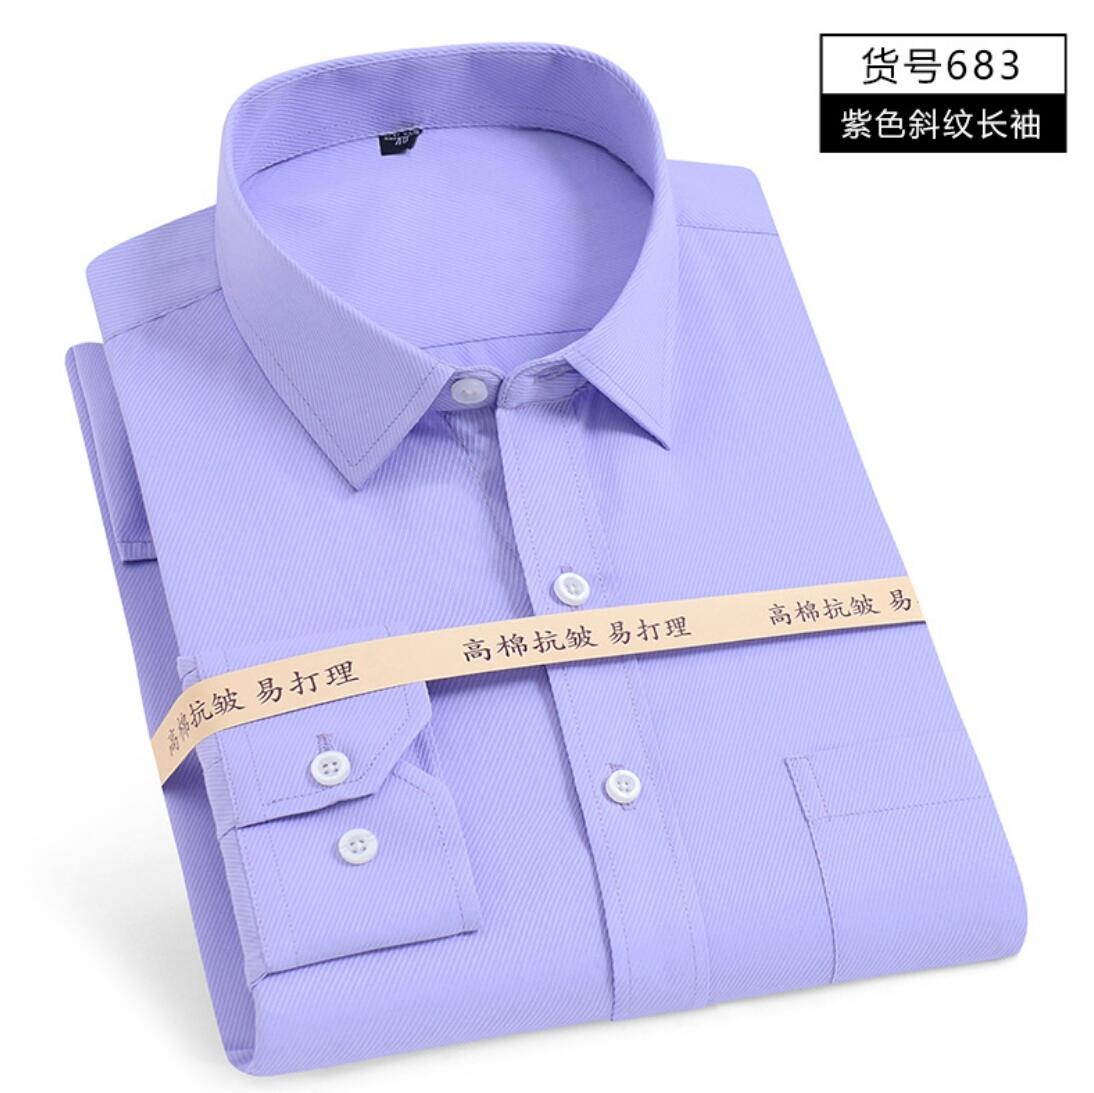 2020 NEW Men's Shirt Spring  Business Men's Solid Color Short J77 Sleeve White Shirt KW9209-1